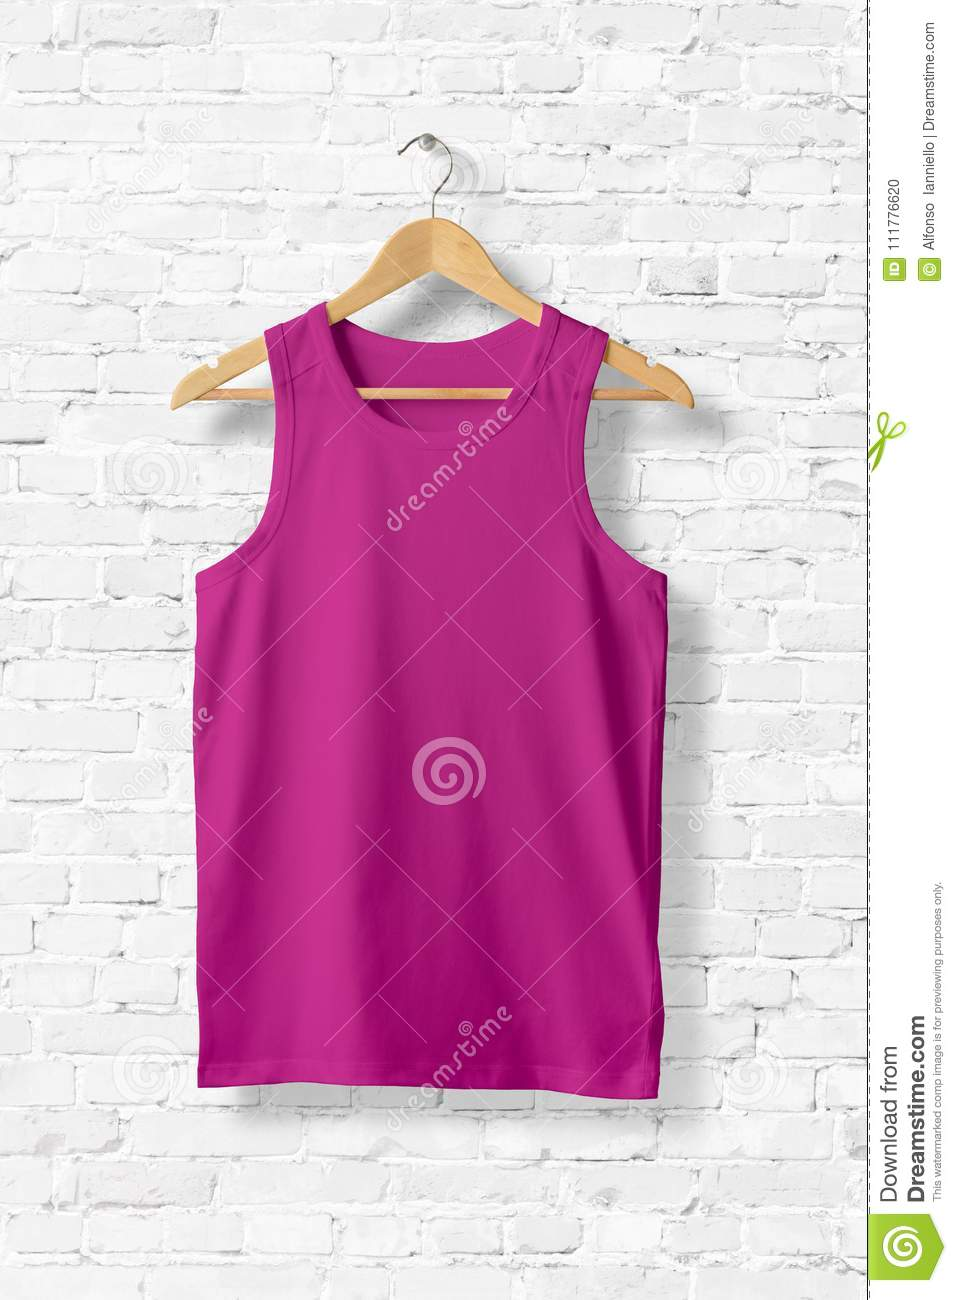 Blank Violet Tank Top Mock-up hanging on white wall.